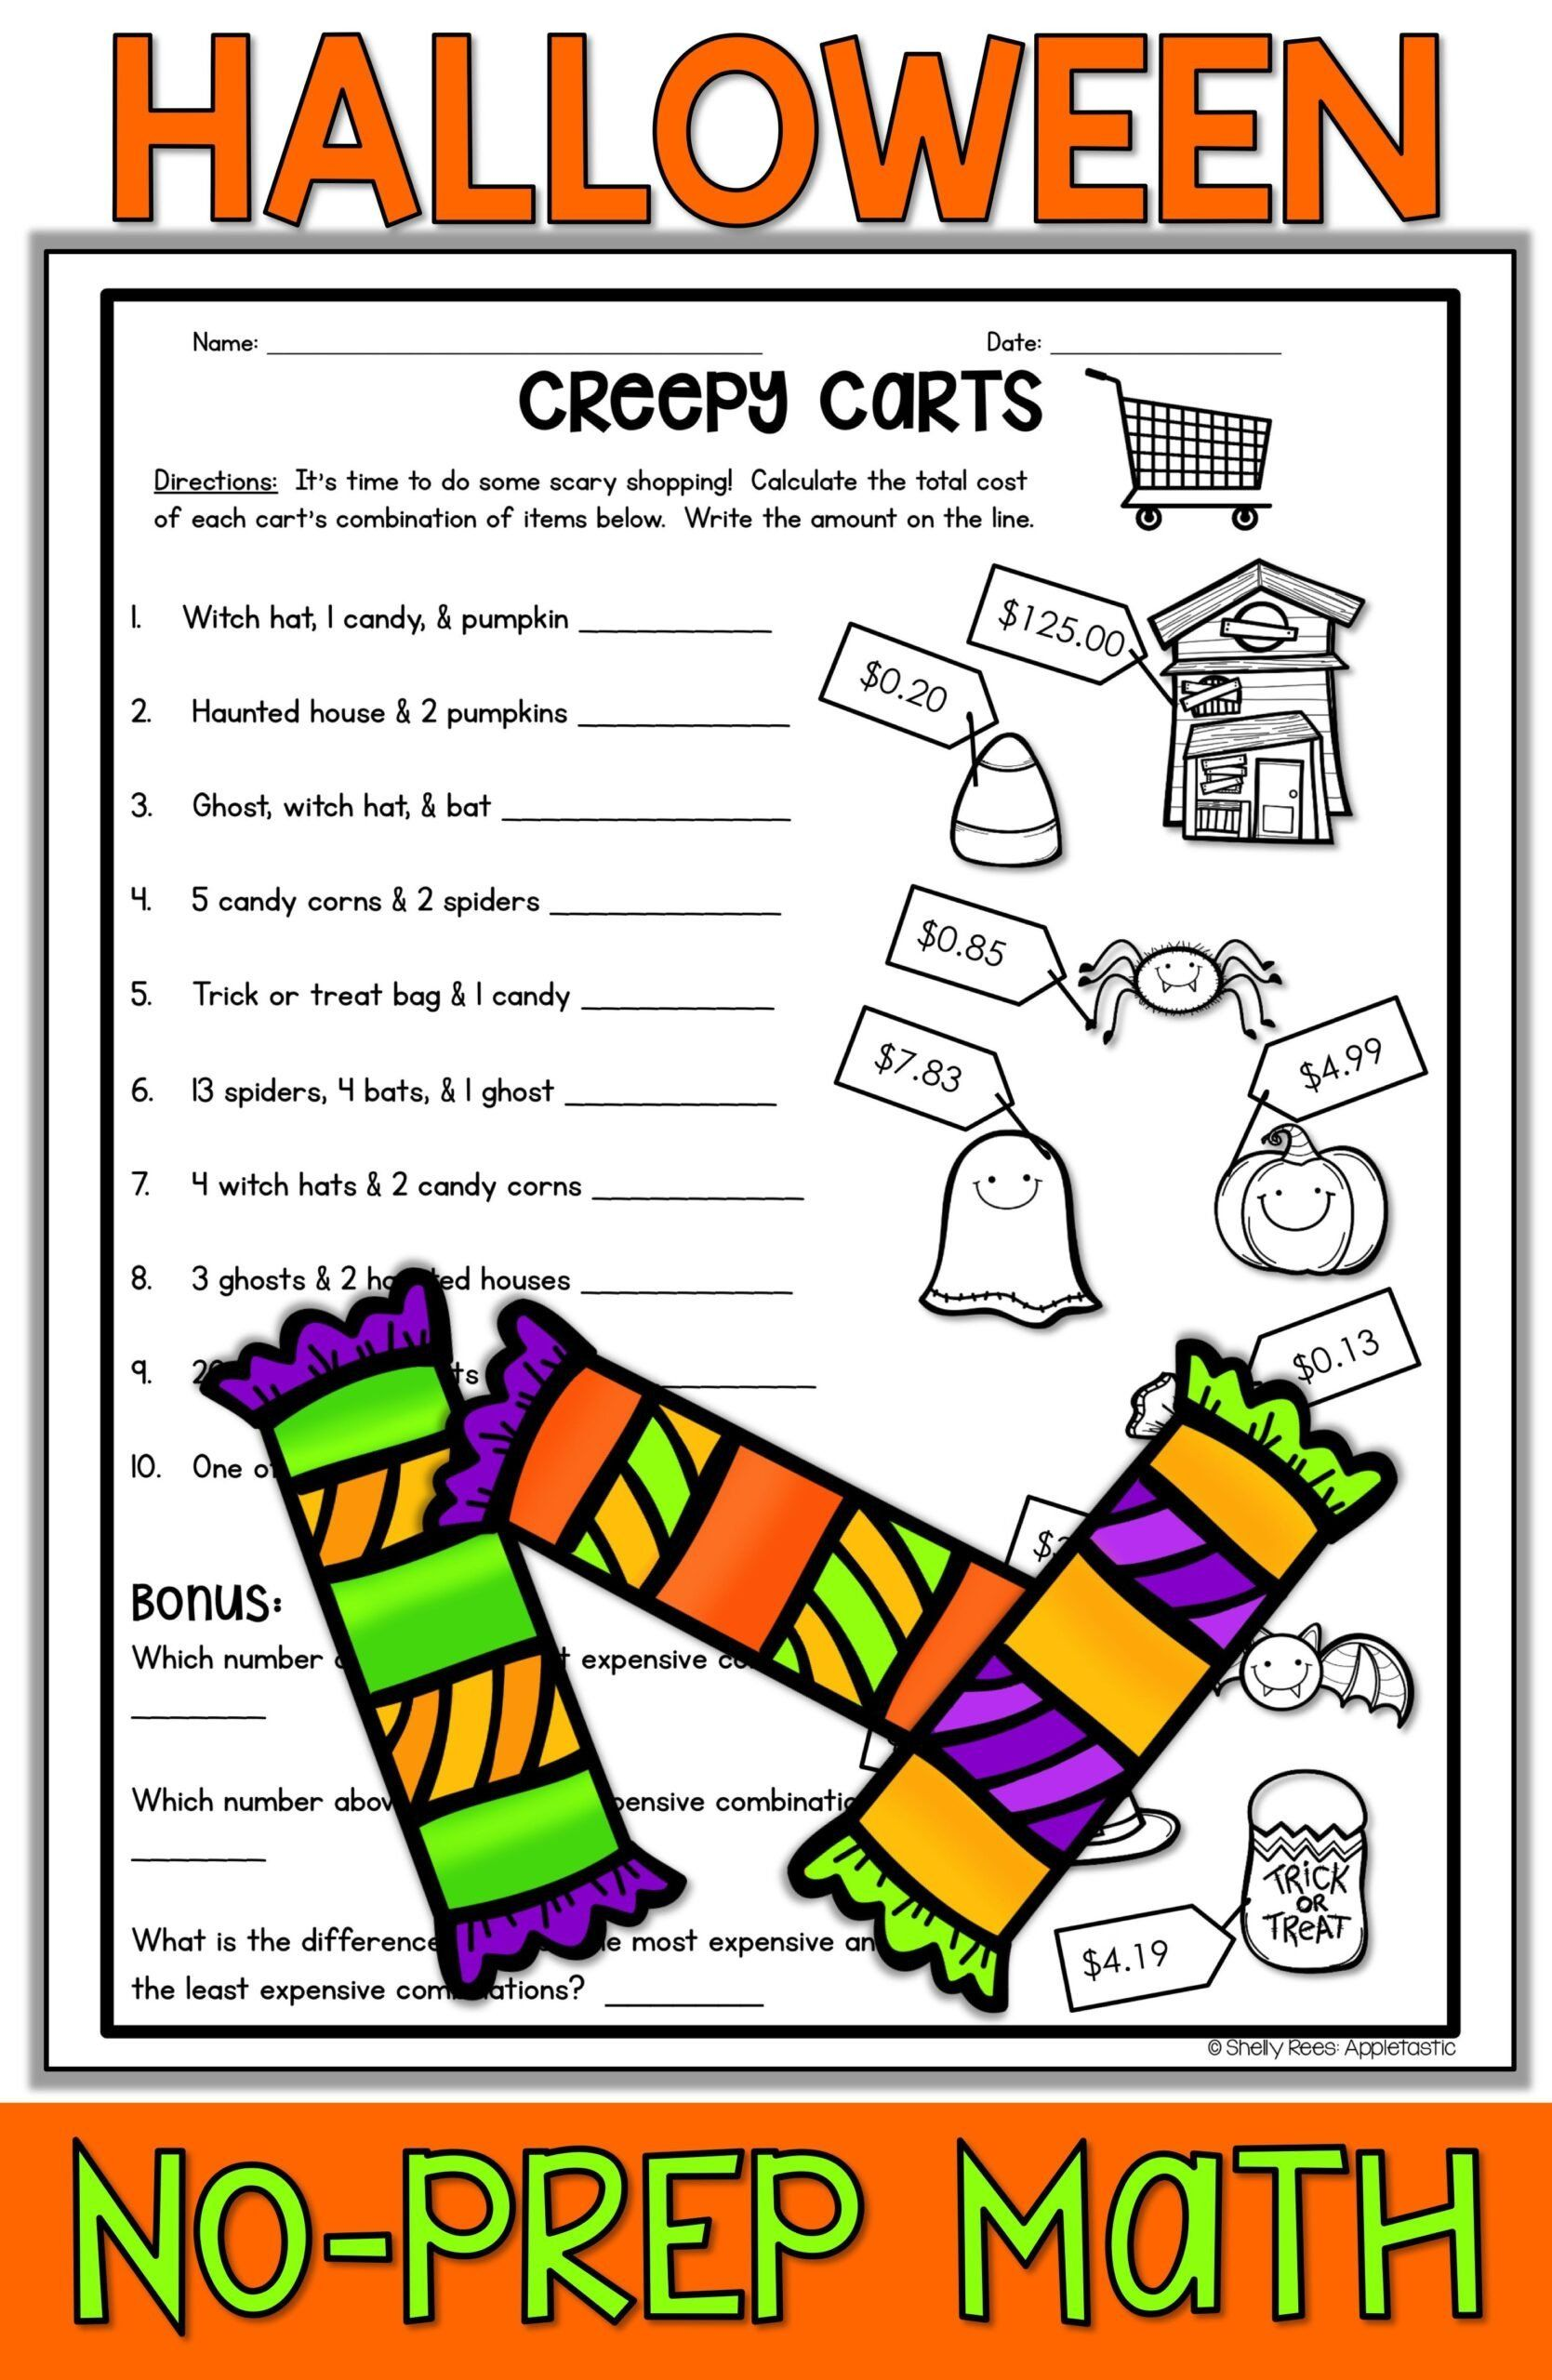 medium resolution of Pin on Halloween worksheets Free